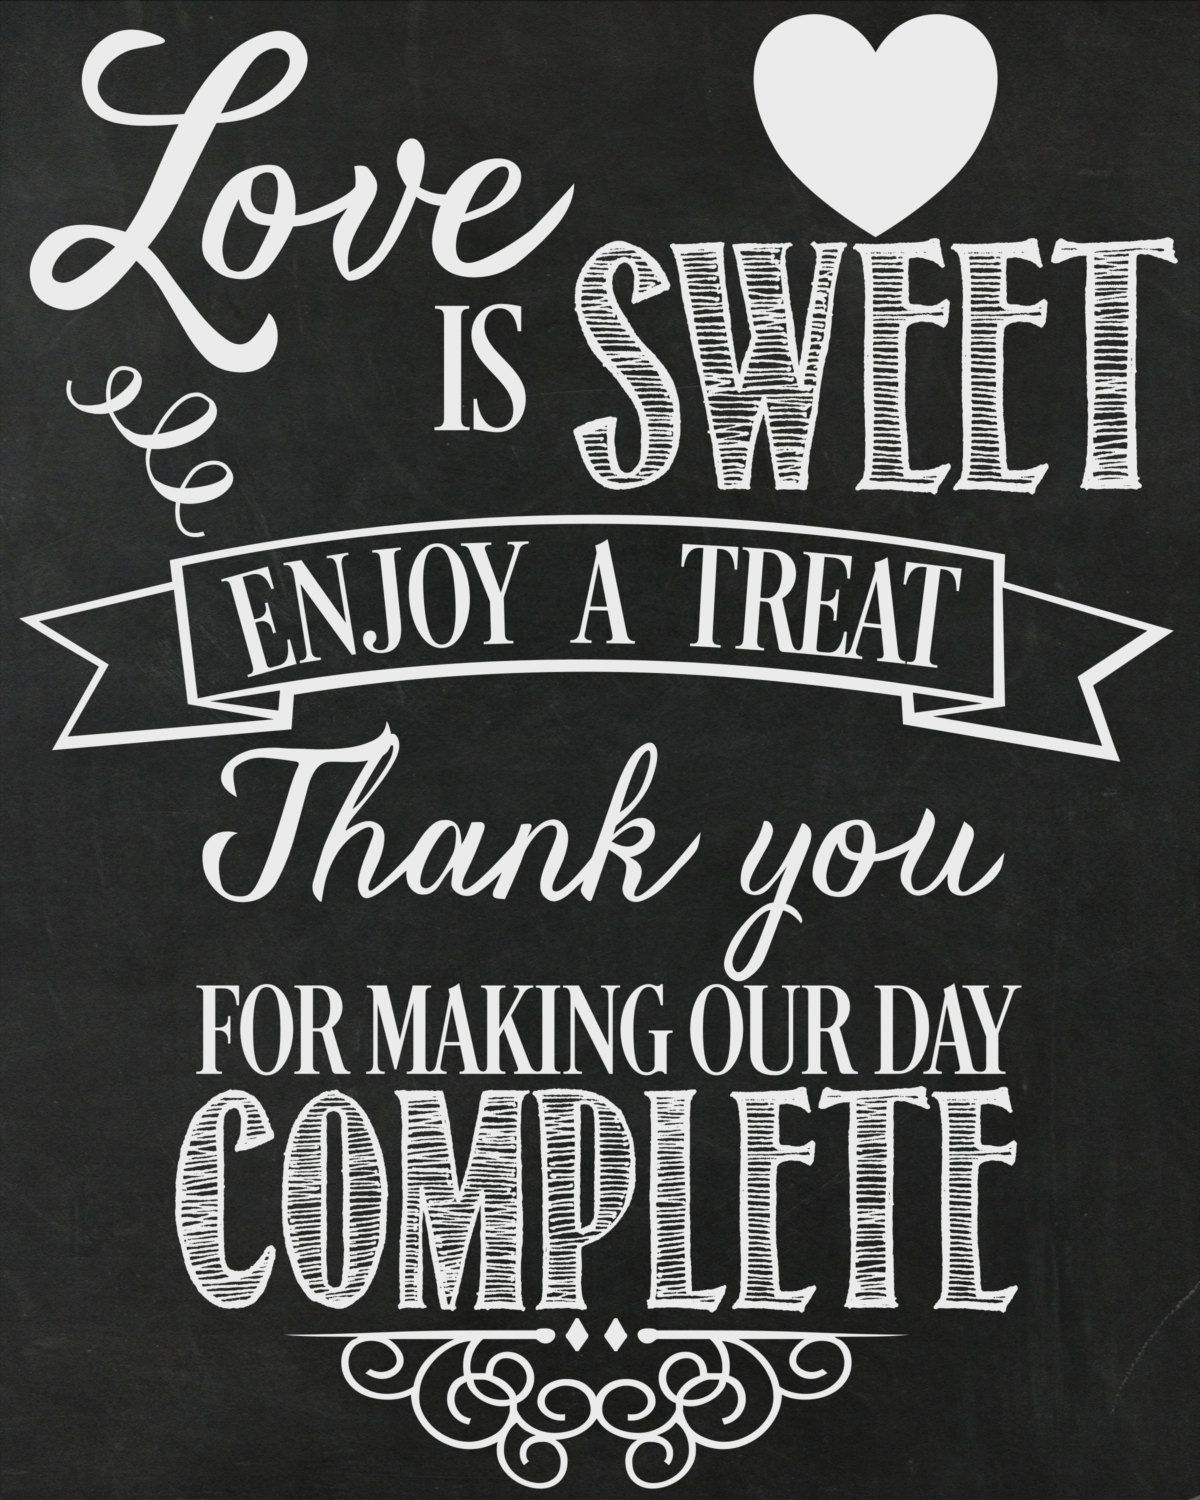 Enjoy A Treat Wedding Printable Sign Diy Dessert Table Treats Candy By Allseamssilly On Etsy